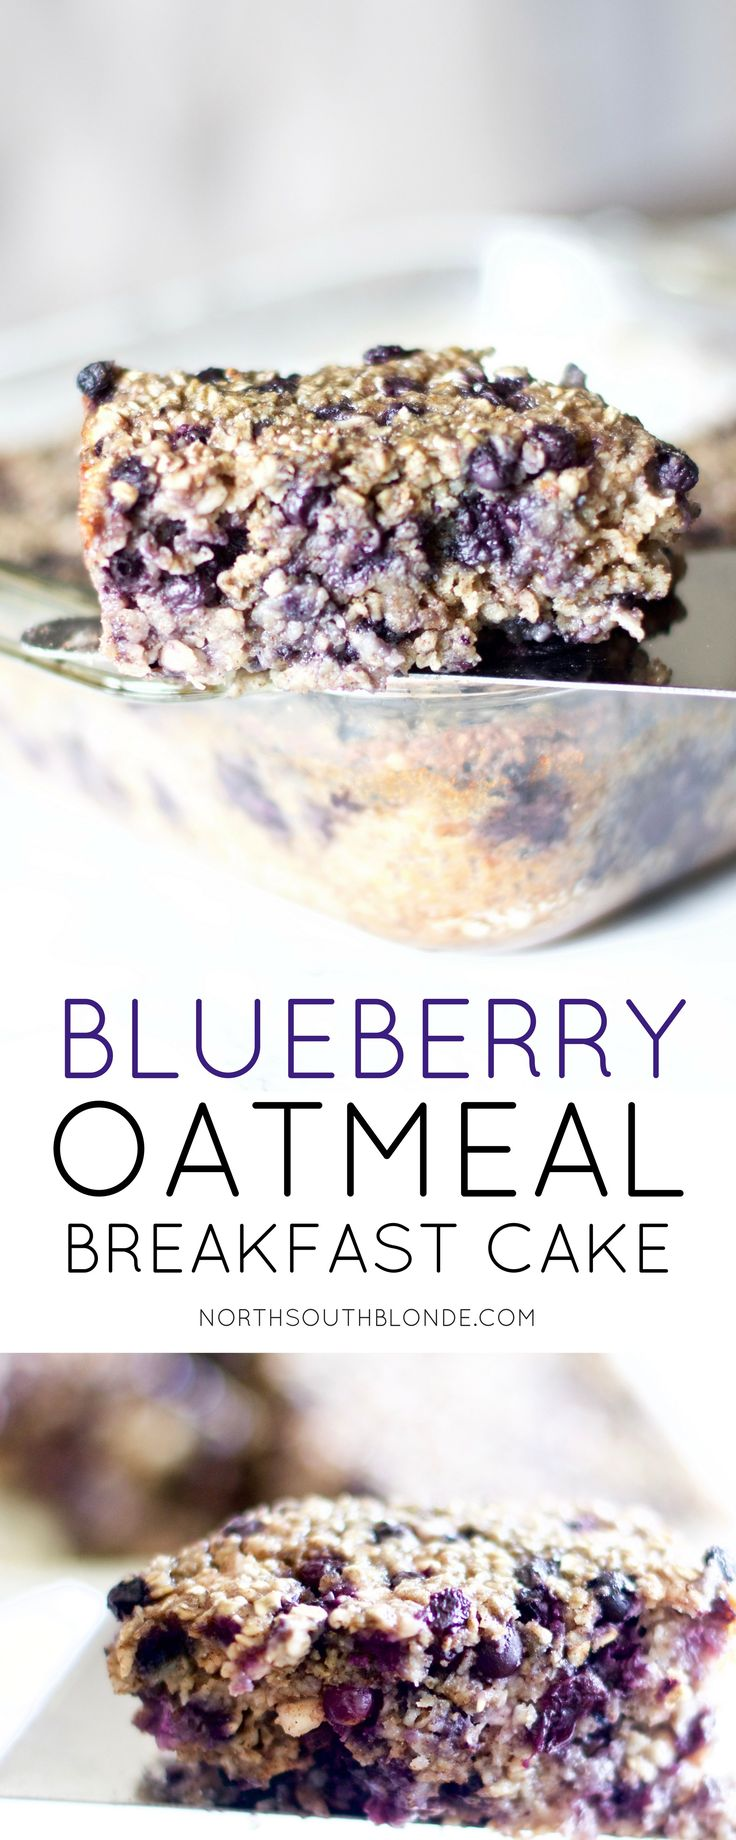 Naturally sweet, this healthy, baked blueberry oatmeal breakfast cake will be your go-to meal every morning, or pretty much for any time of the day. enjoy the melt-in-your-mouth warm, crisp oats with an explosion of blueberries. It will feel like dessert